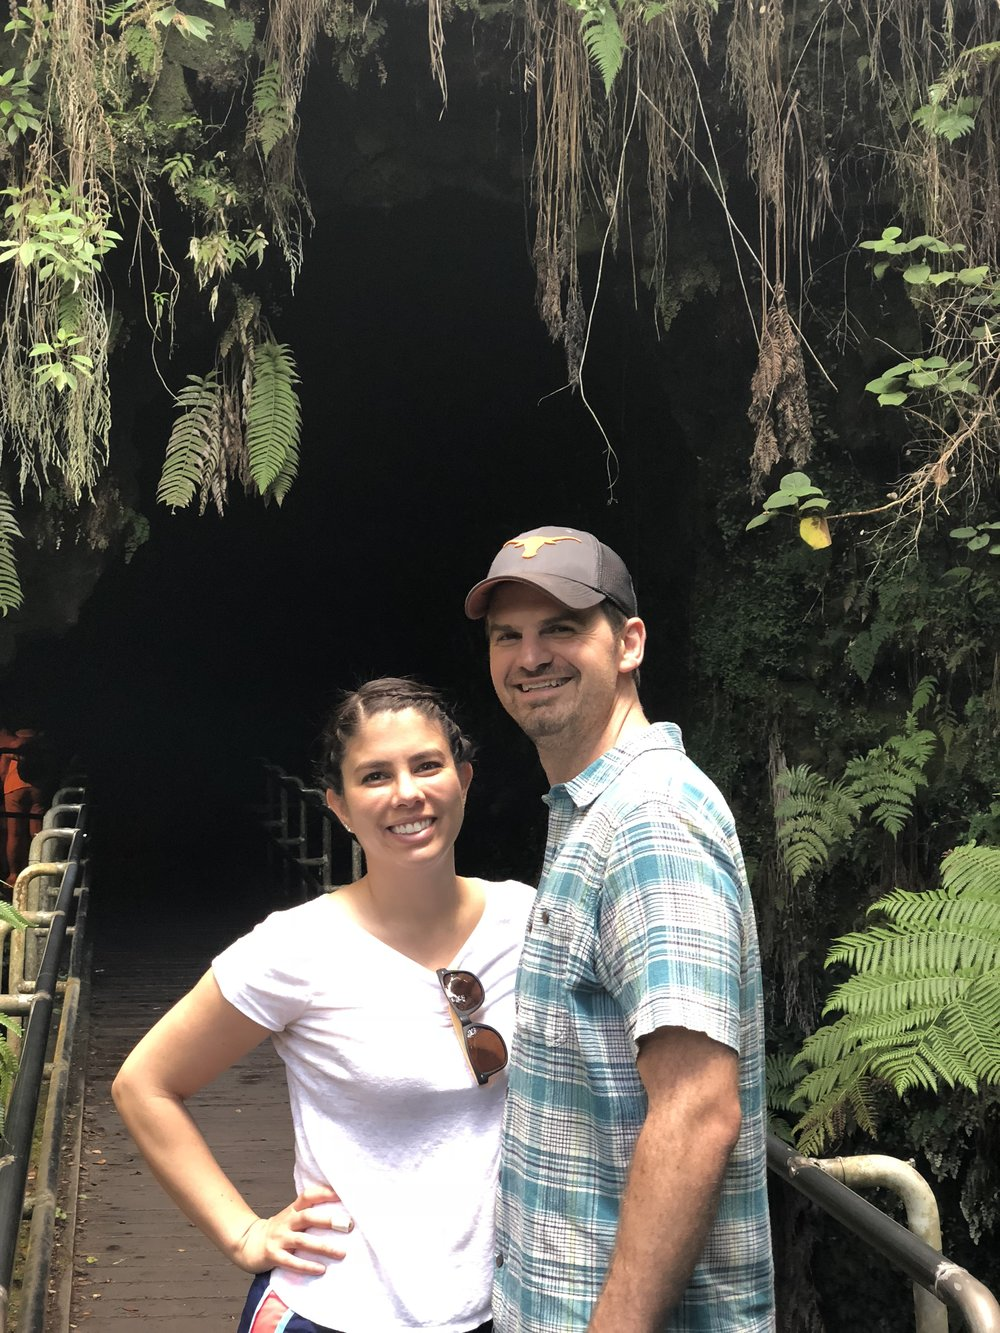 Couple pose for a photo before entering a lava tube at Volcanos National Park.